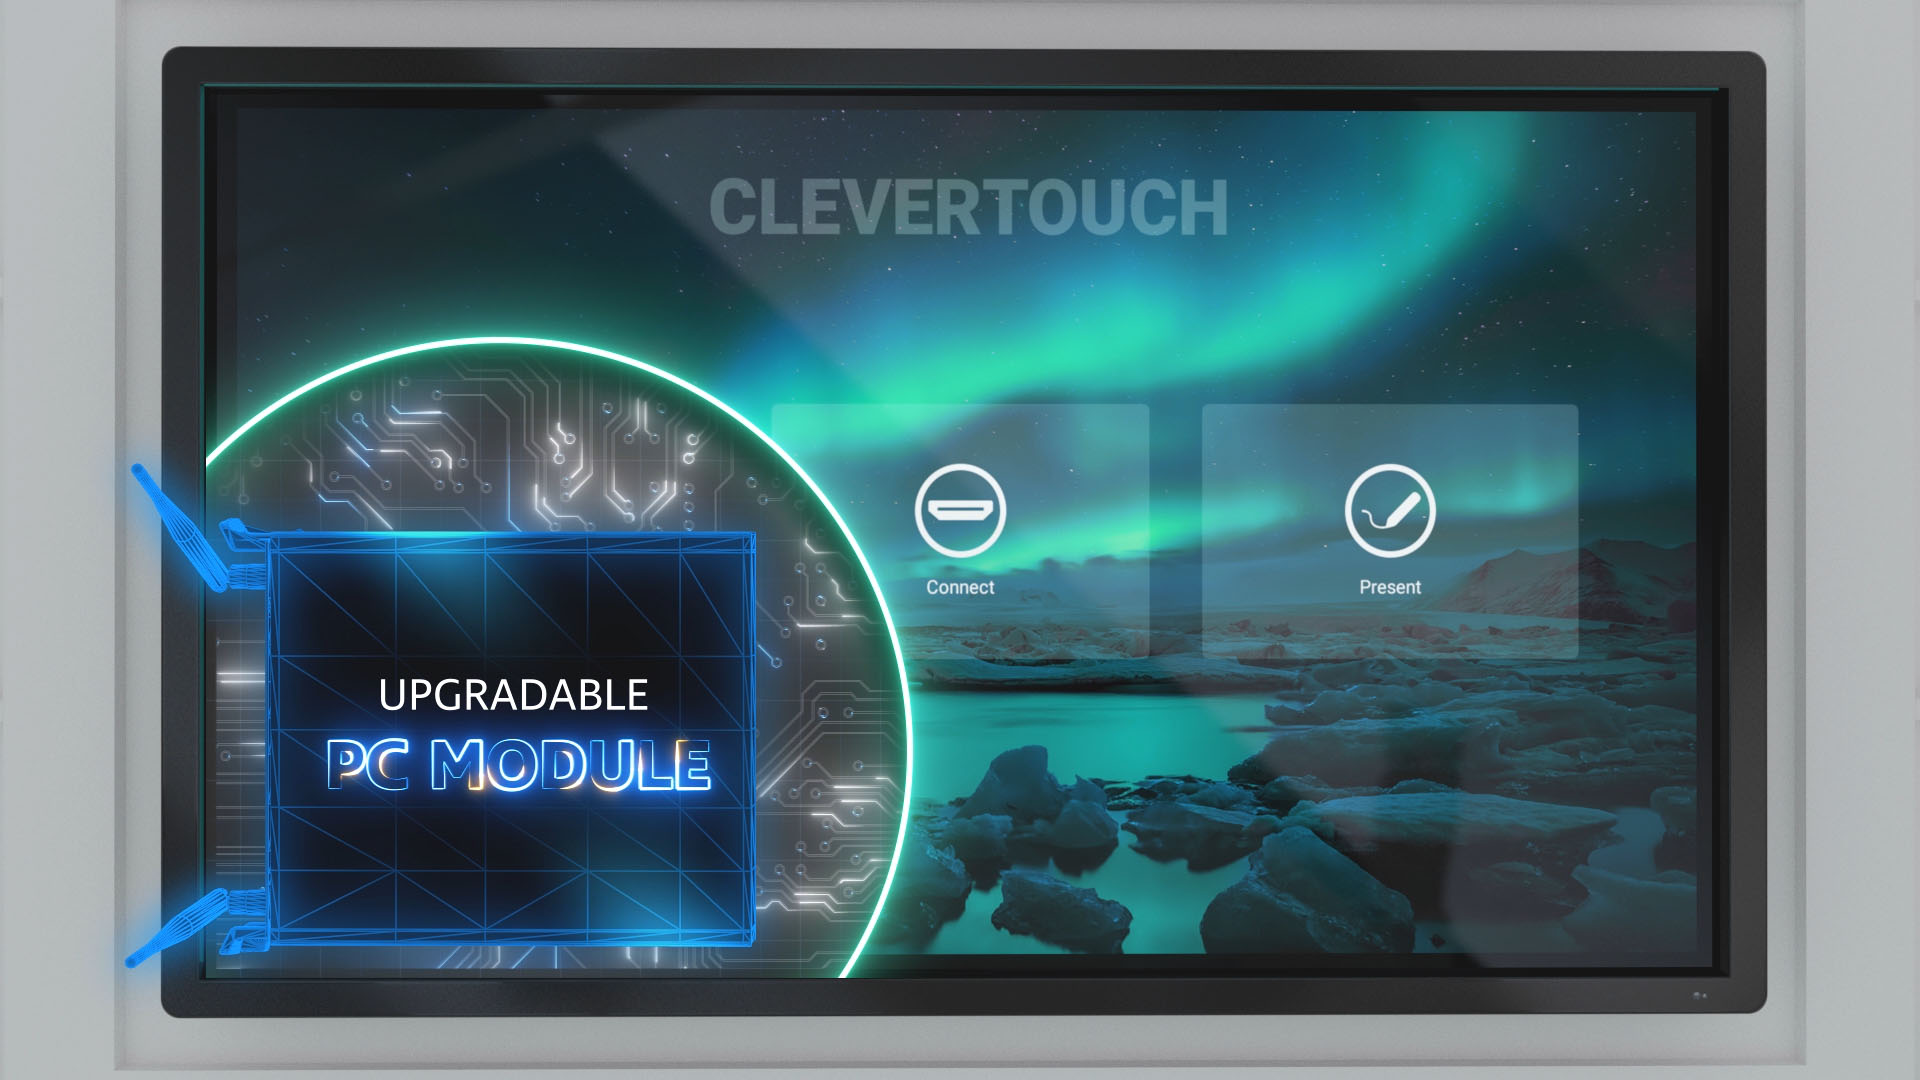 Clevertouch_screem shots_#_0003_Layer 3